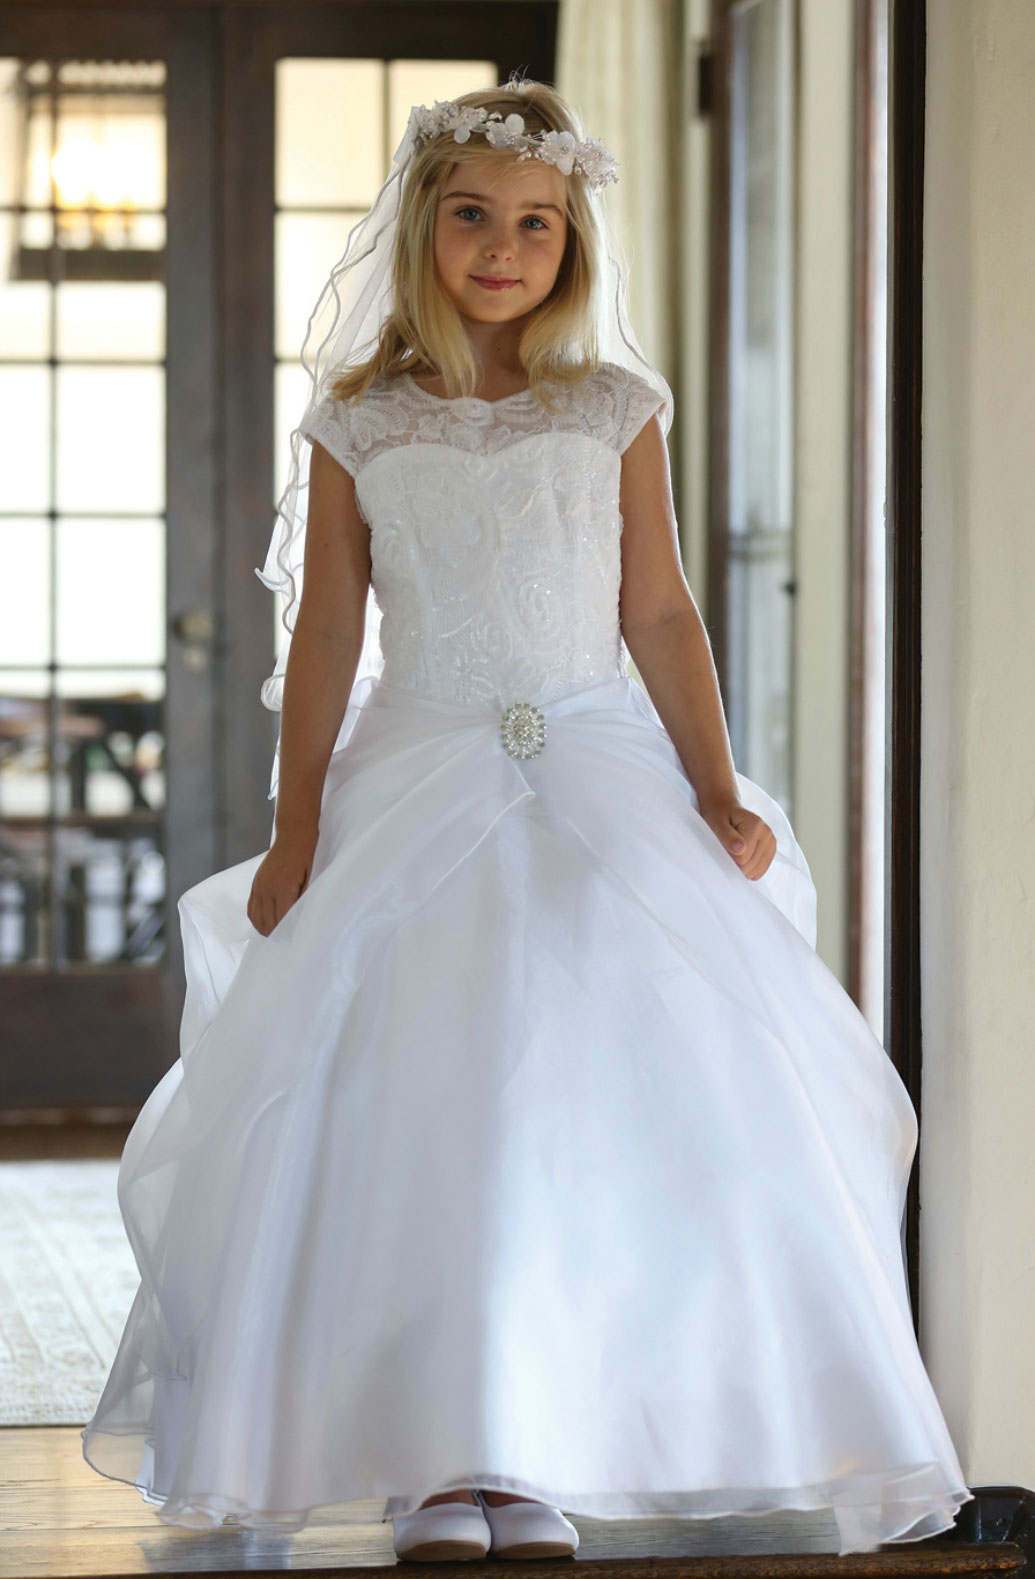 AG_DR1712 - Girls Dress Style DR1712 - WHITE Cap Sleeve Dress with ...